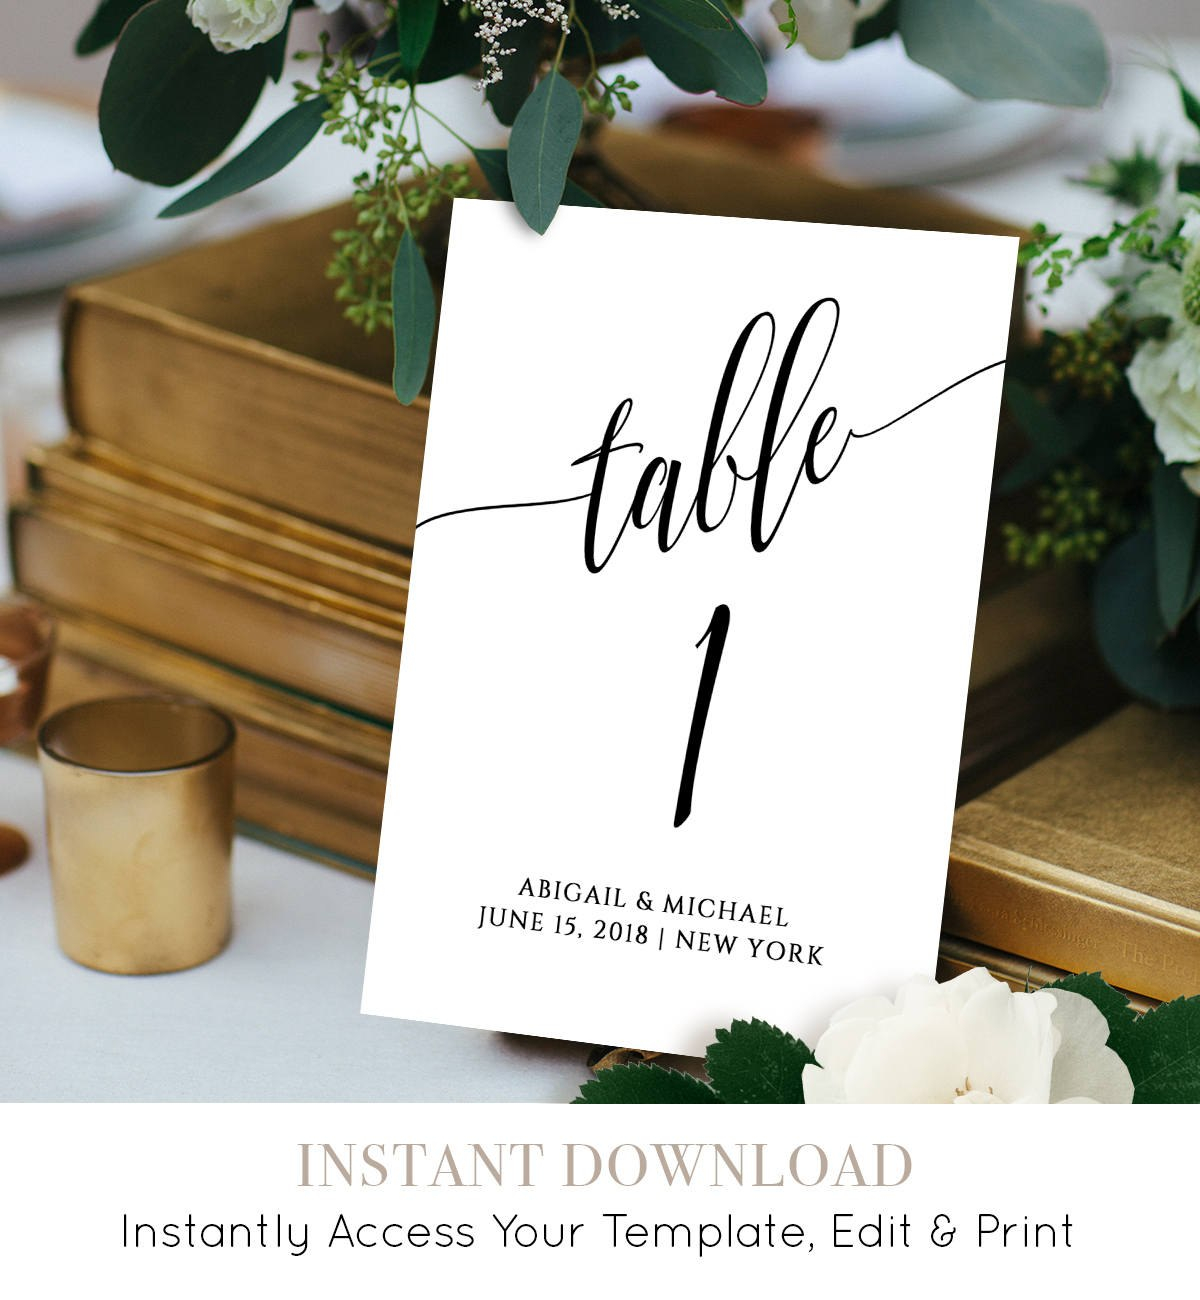 Wedding Table Number Card Template Calligraphy Editable Regarding Table Number Cards Template